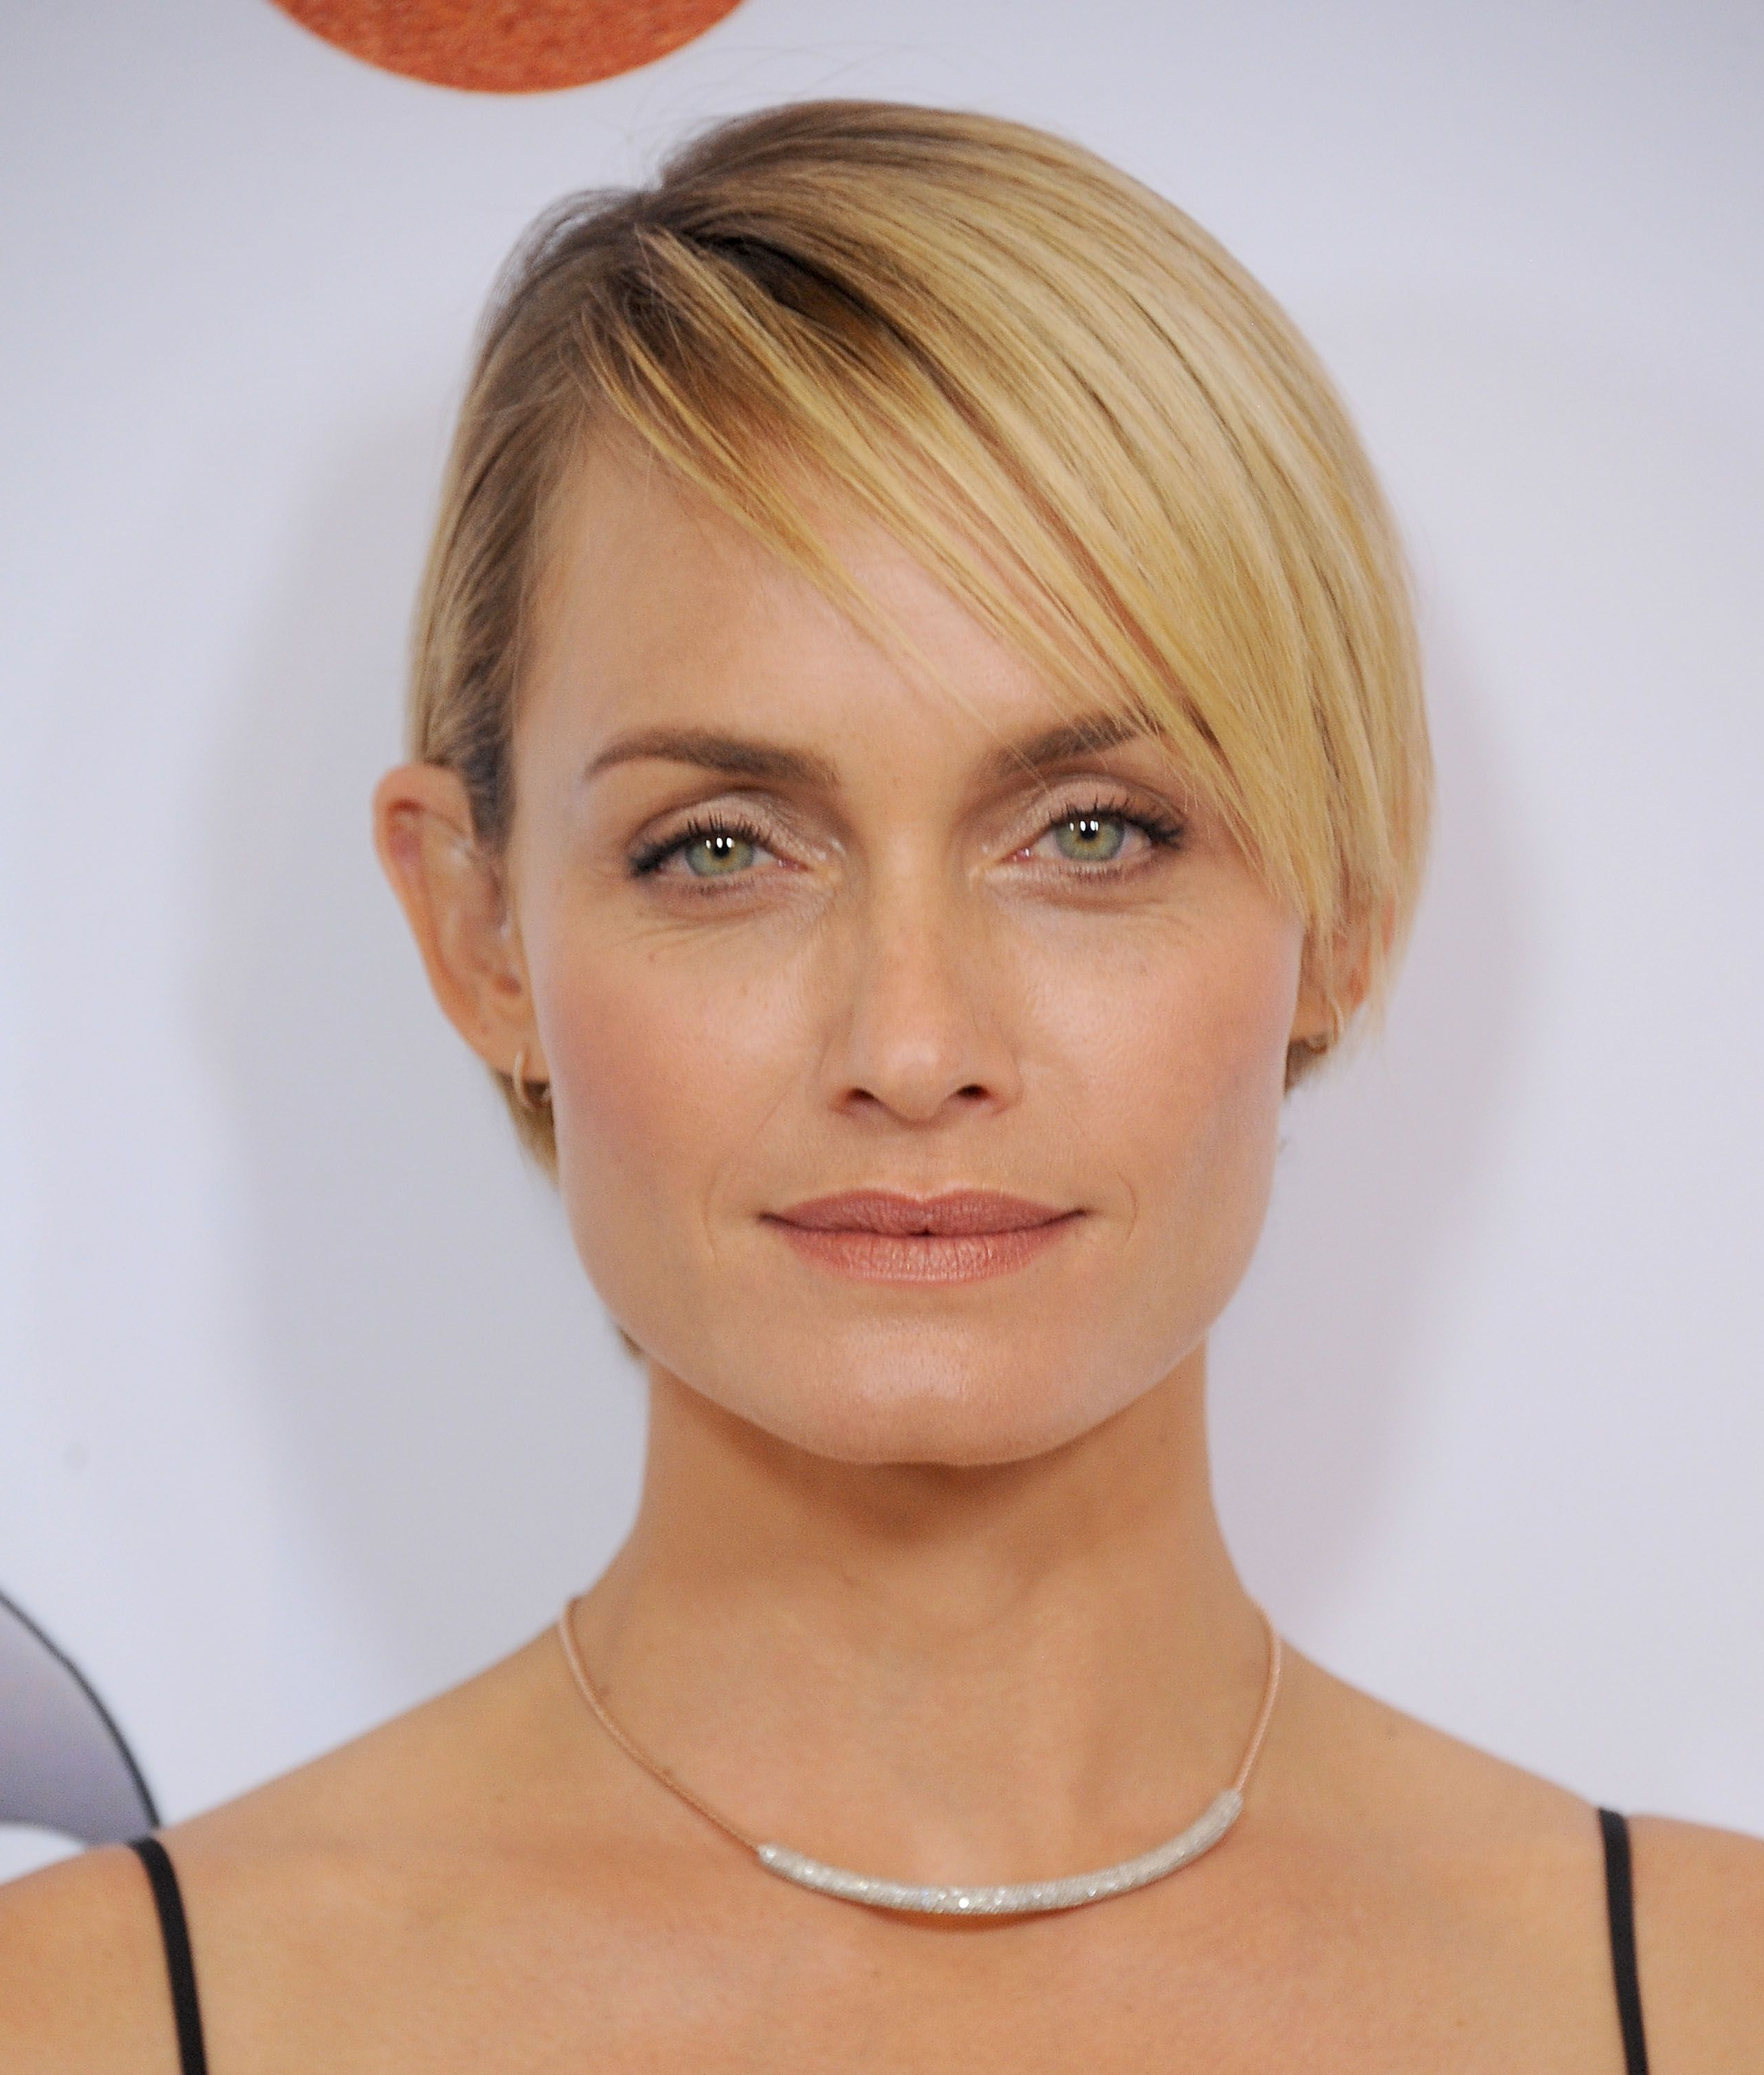 65 Best Short Hairstyles, Haircuts, And Short Hair Ideas For 2018 For Pure Blonde Shorter Hairstyles For Older Women (View 14 of 20)